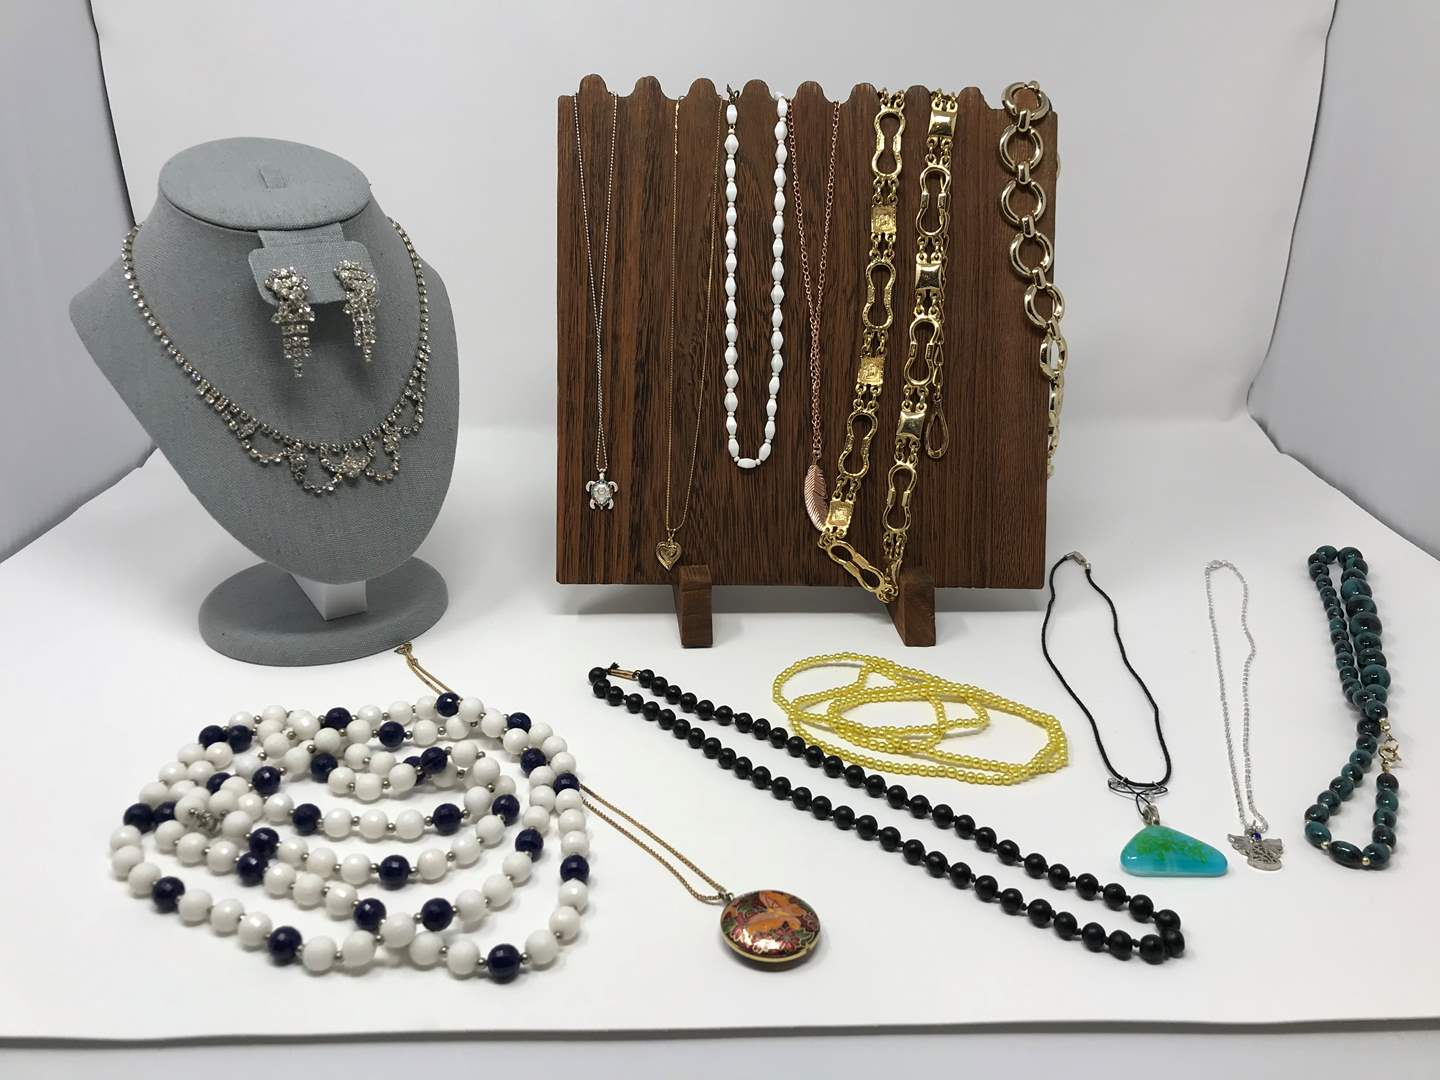 Lot # 220 - Necklaces of Various Sizes & Lengths, Beads, Metal & Vintage Rhinestone Earrings (main image)